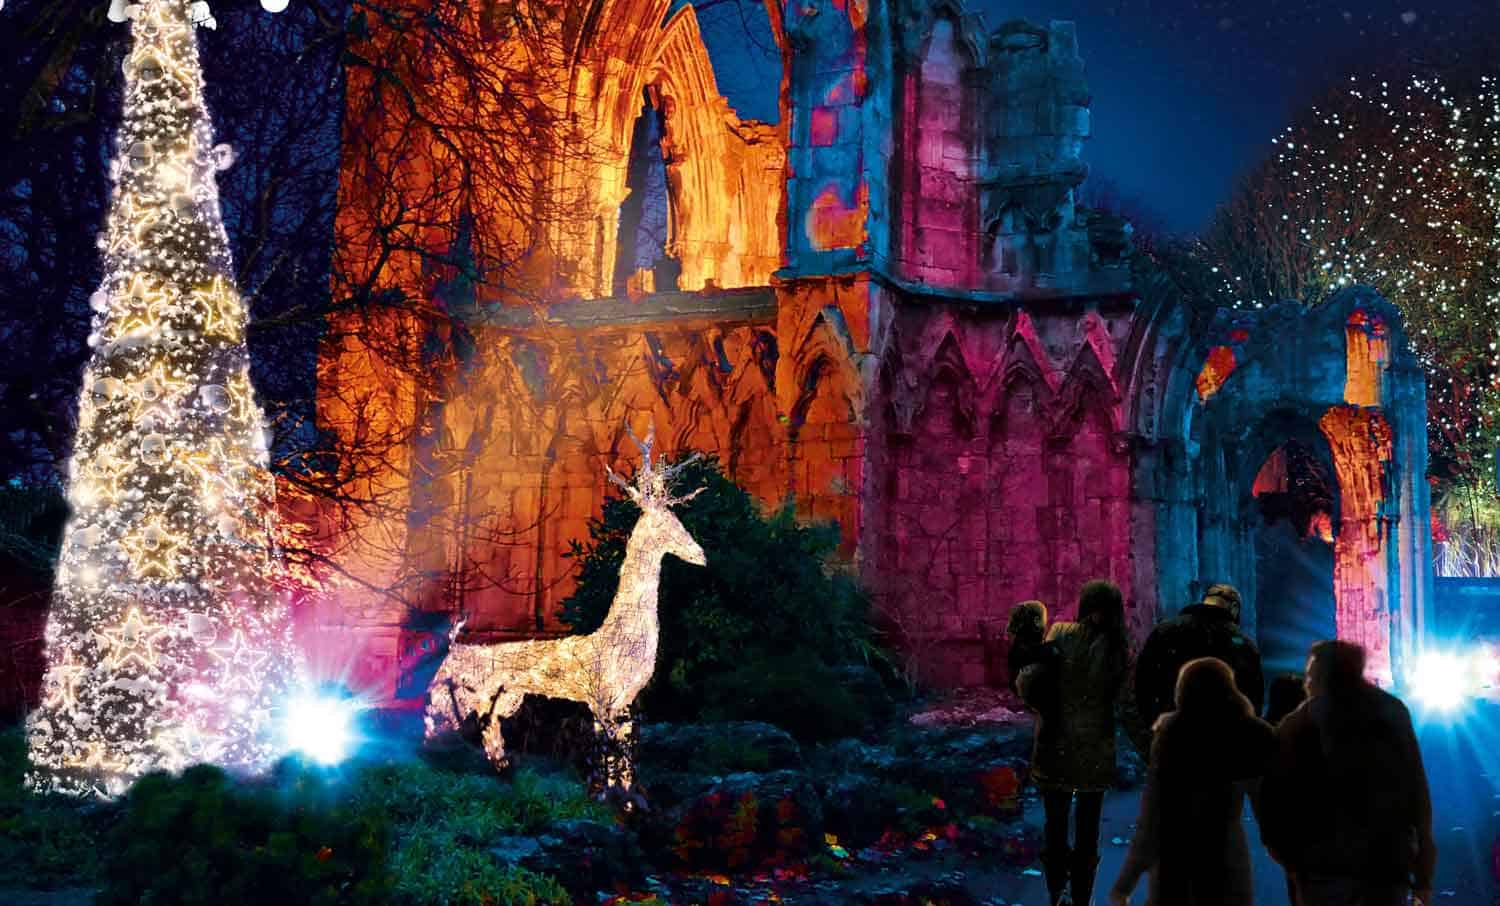 *Reviewed* Christmas at York Museum Gardens: Illuminated Walk